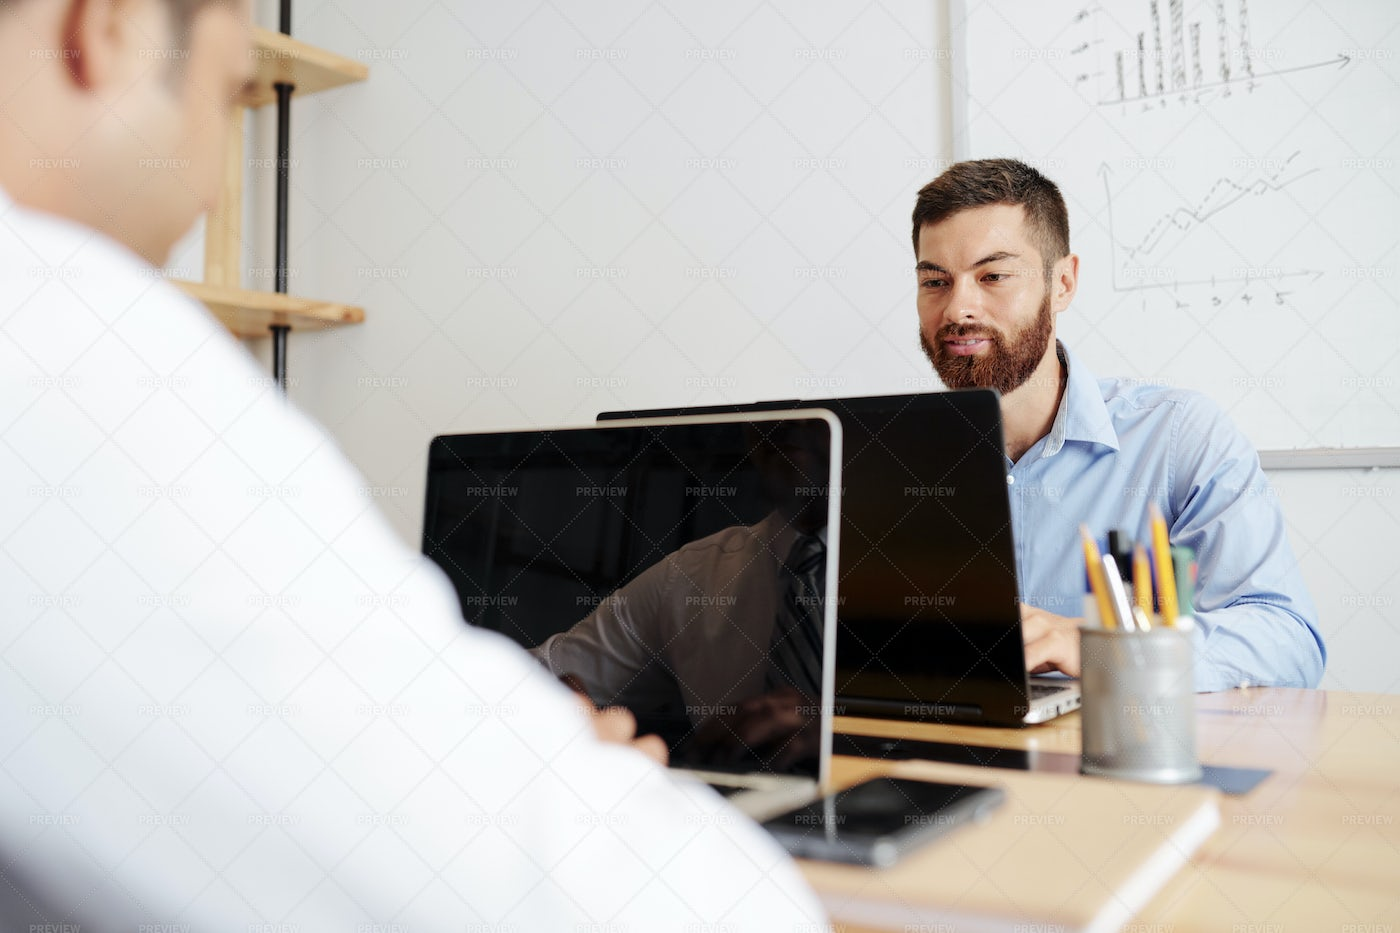 Business People Working On Laptop: Stock Photos